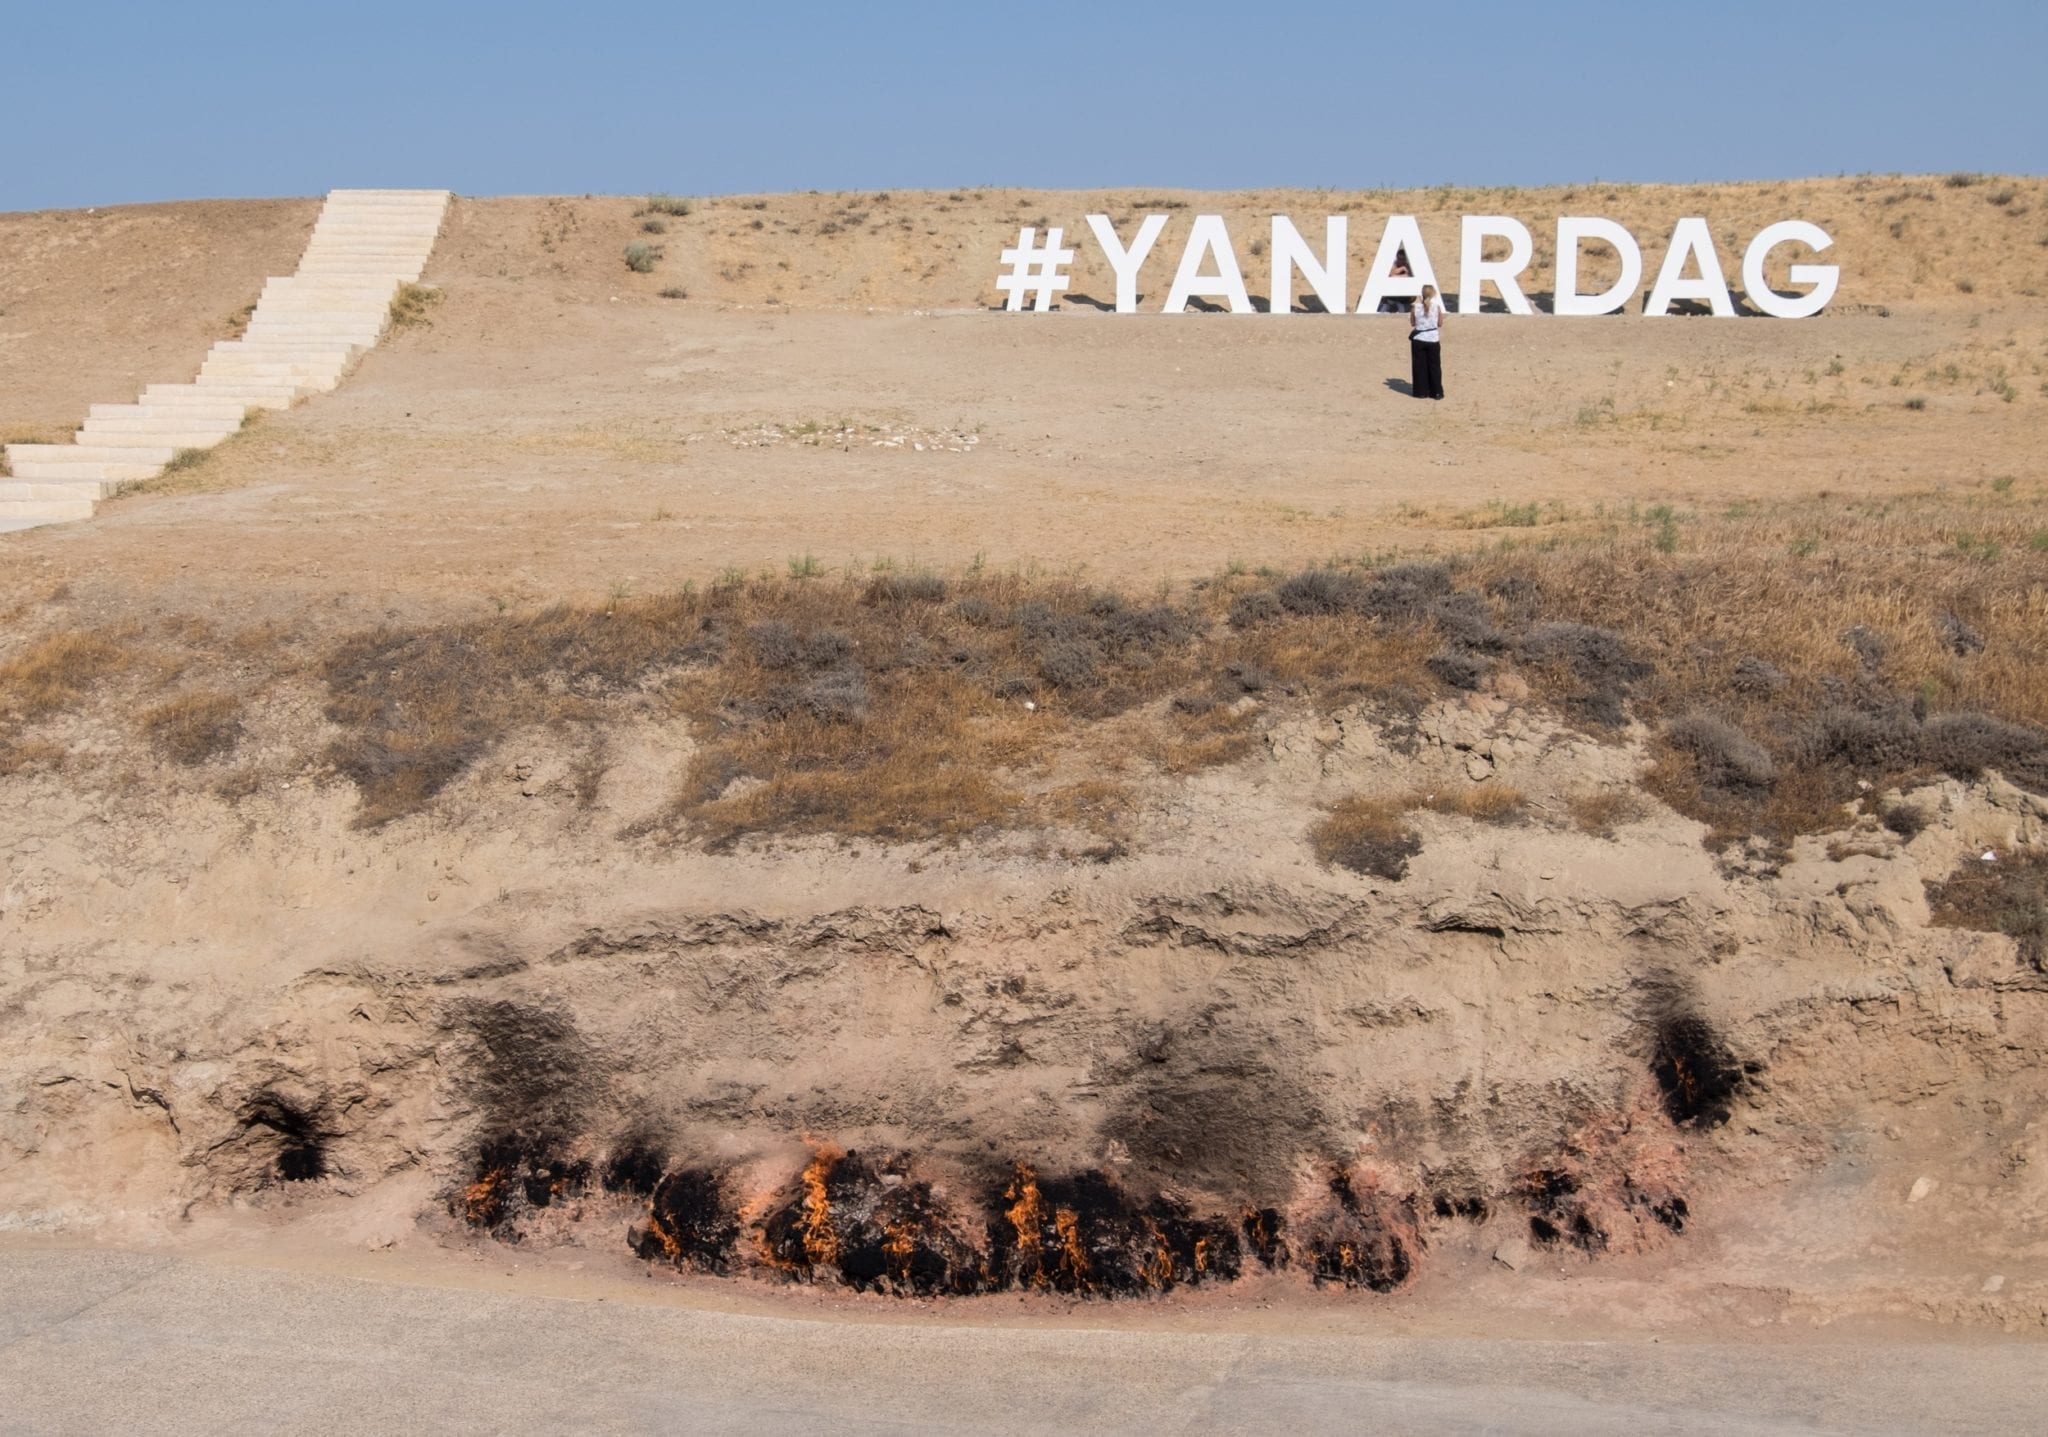 A brown hillside at Yanar Dag where flames burst out of the earth at the bottom. It says #YANARDAG in white on the hill, in the style of the Hollywood sign.